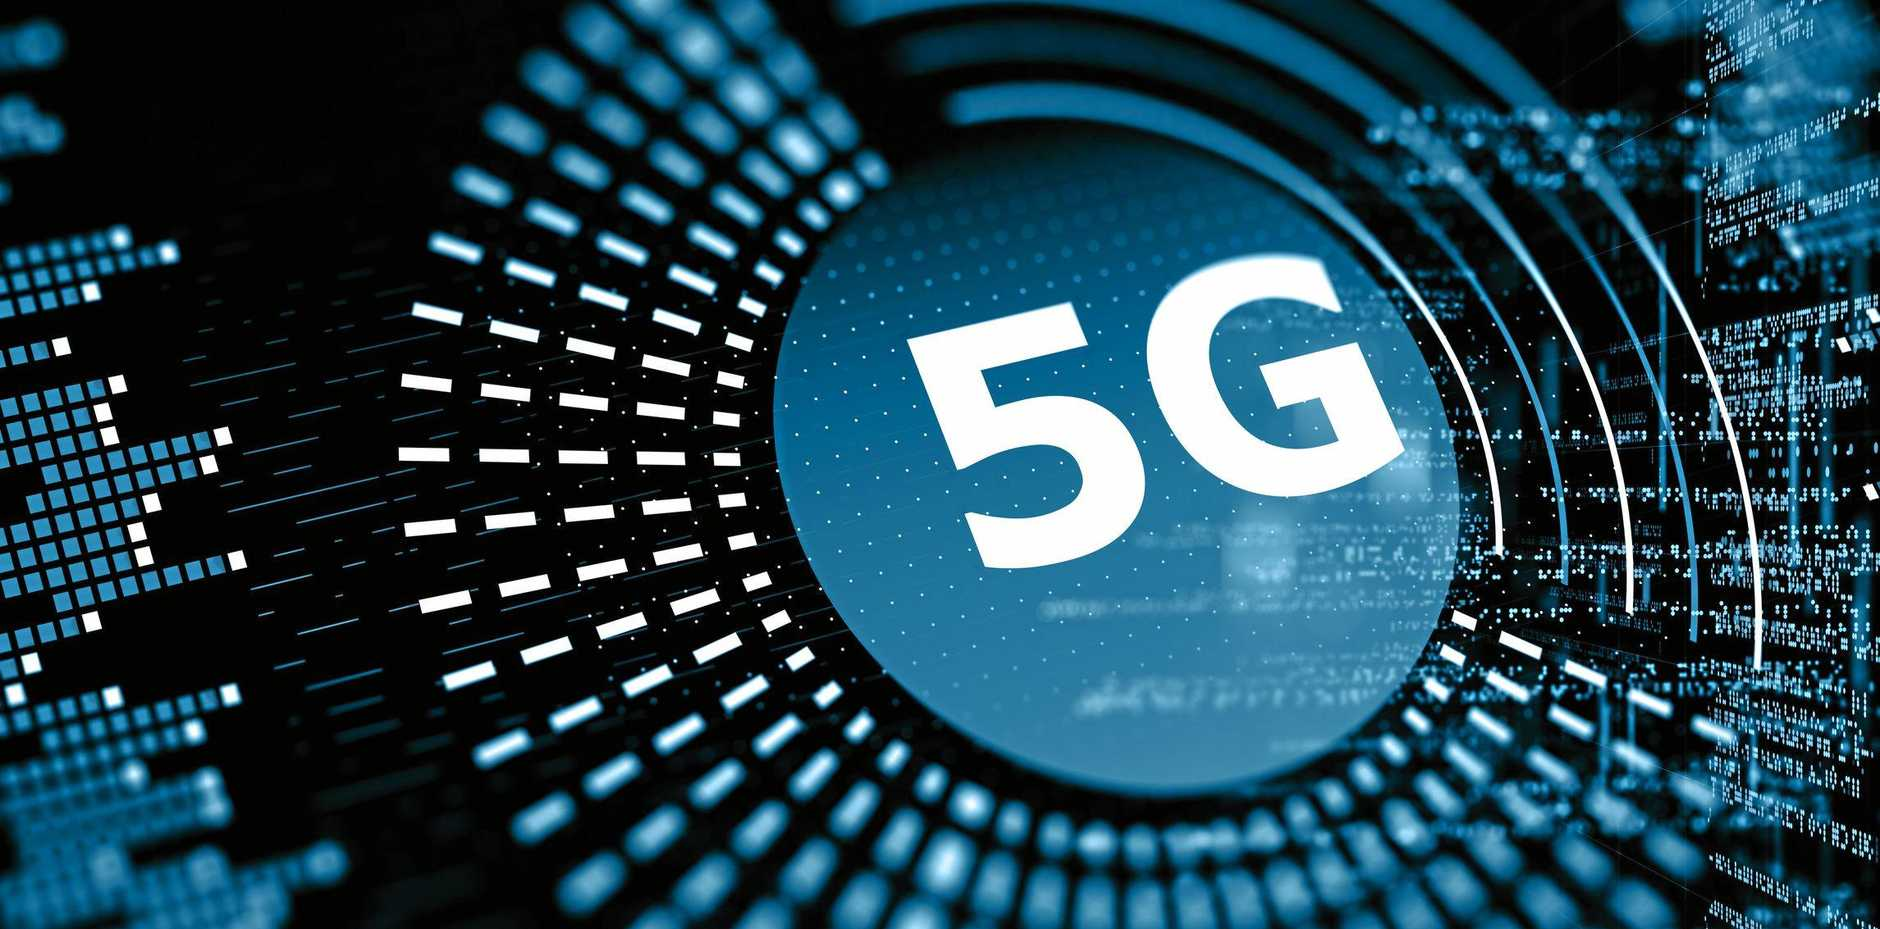 NEW TECH: Concerns have been raised by the community about the safety of 5G.